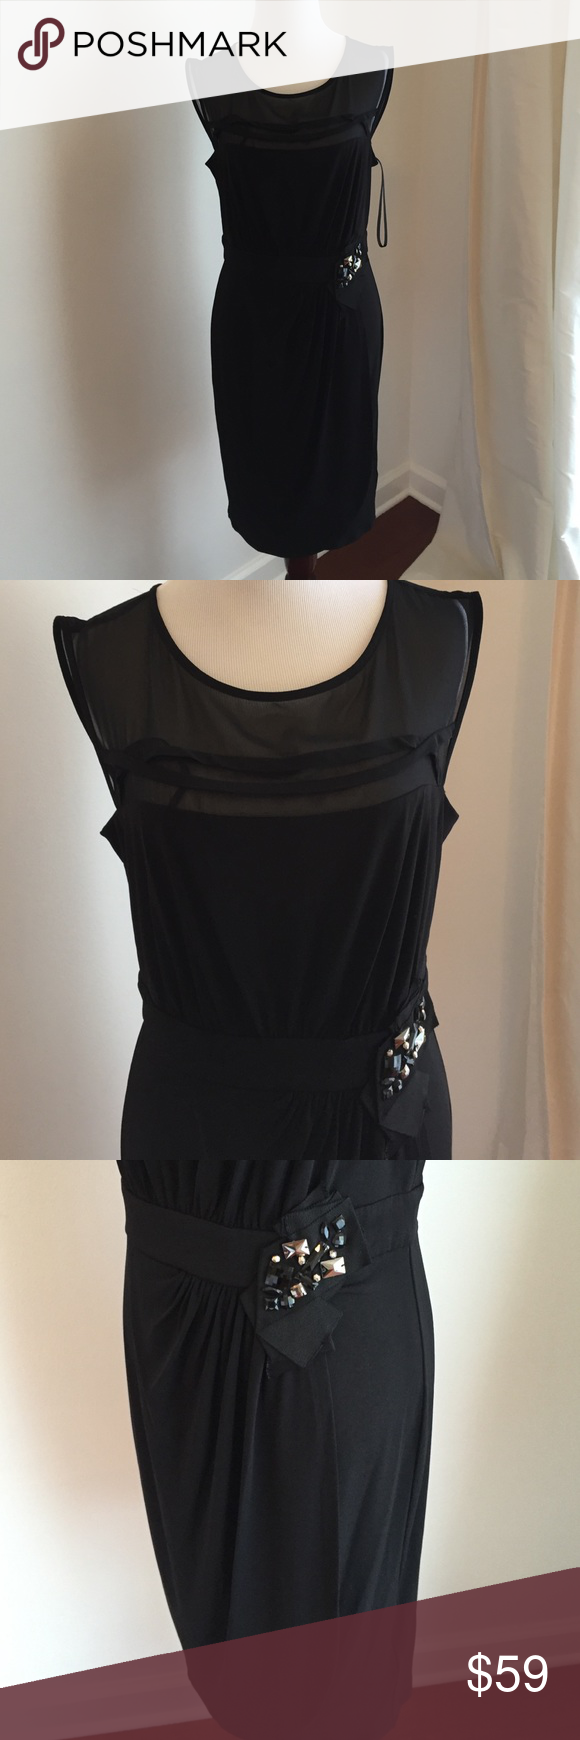 Akac Ecou Black Cocktail Dress Boutique | Pinterest